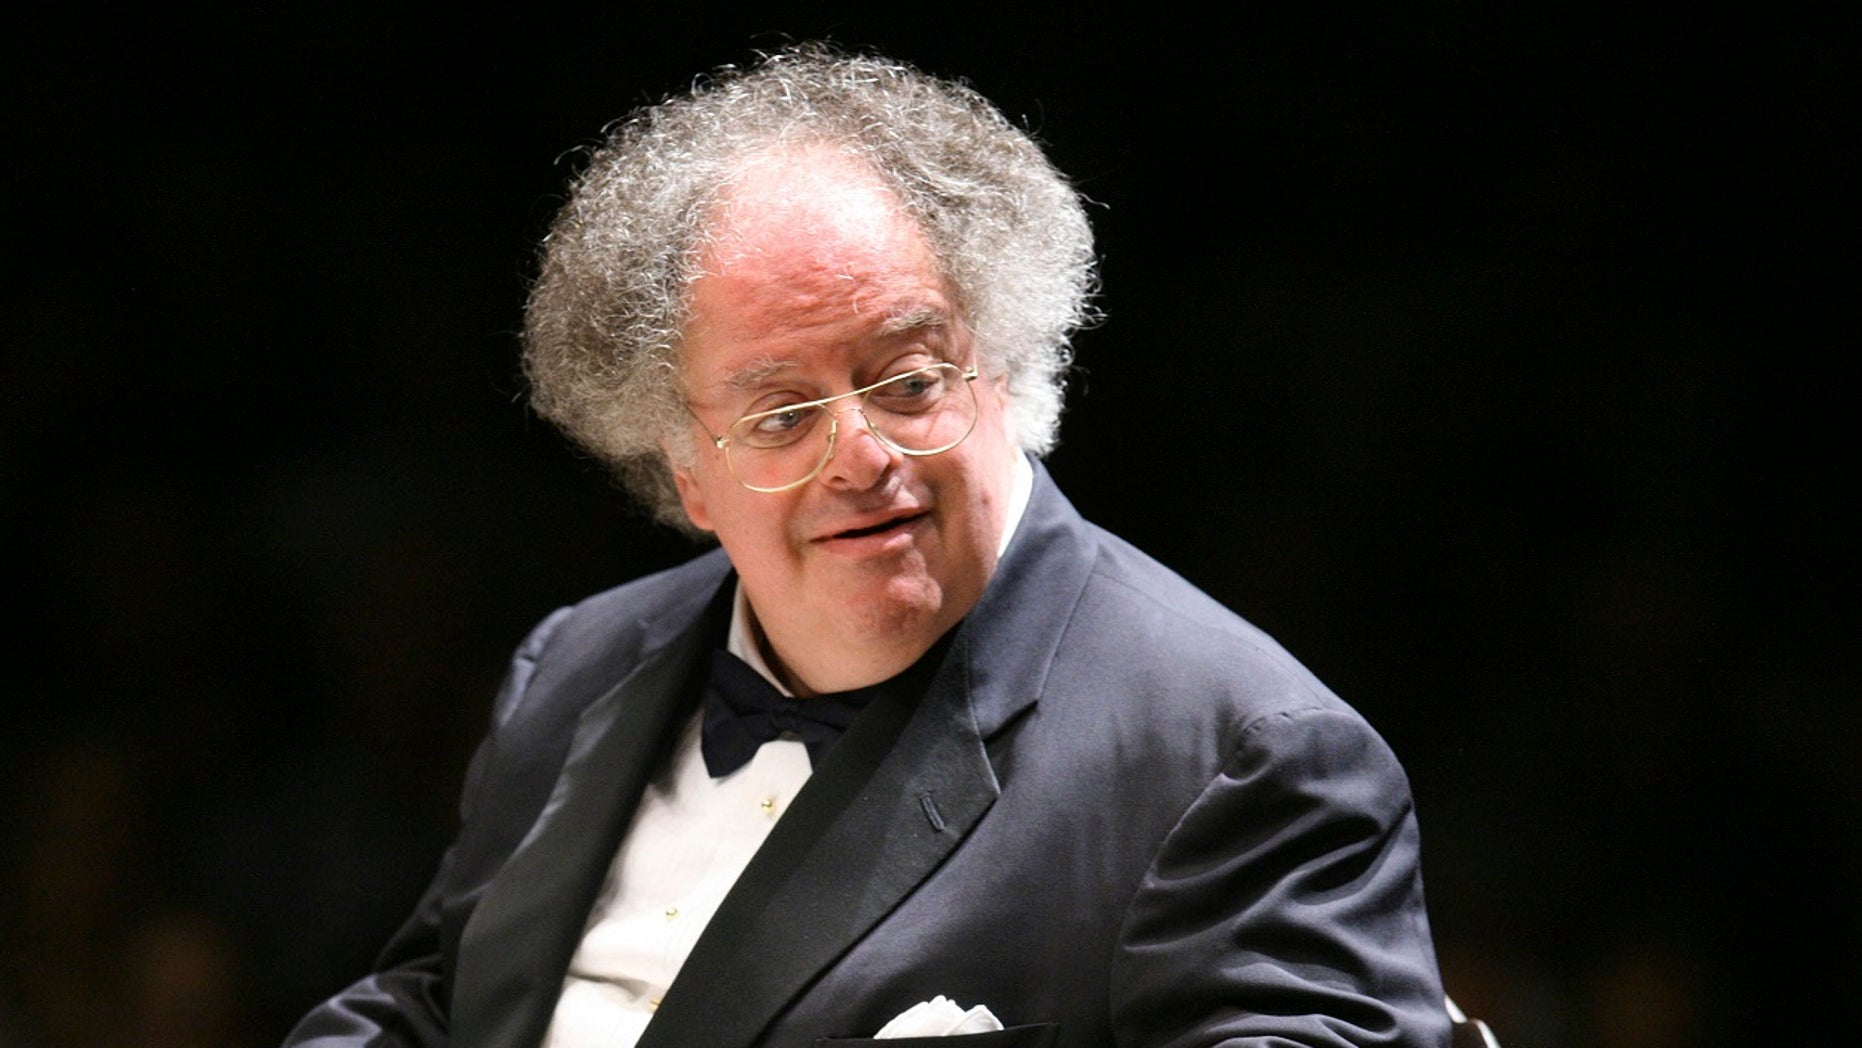 Music director James Levine conducts the Boston Symphony Orchestra on its opening night at Tanglewood in Lenox., Mass., July 7, 2006.